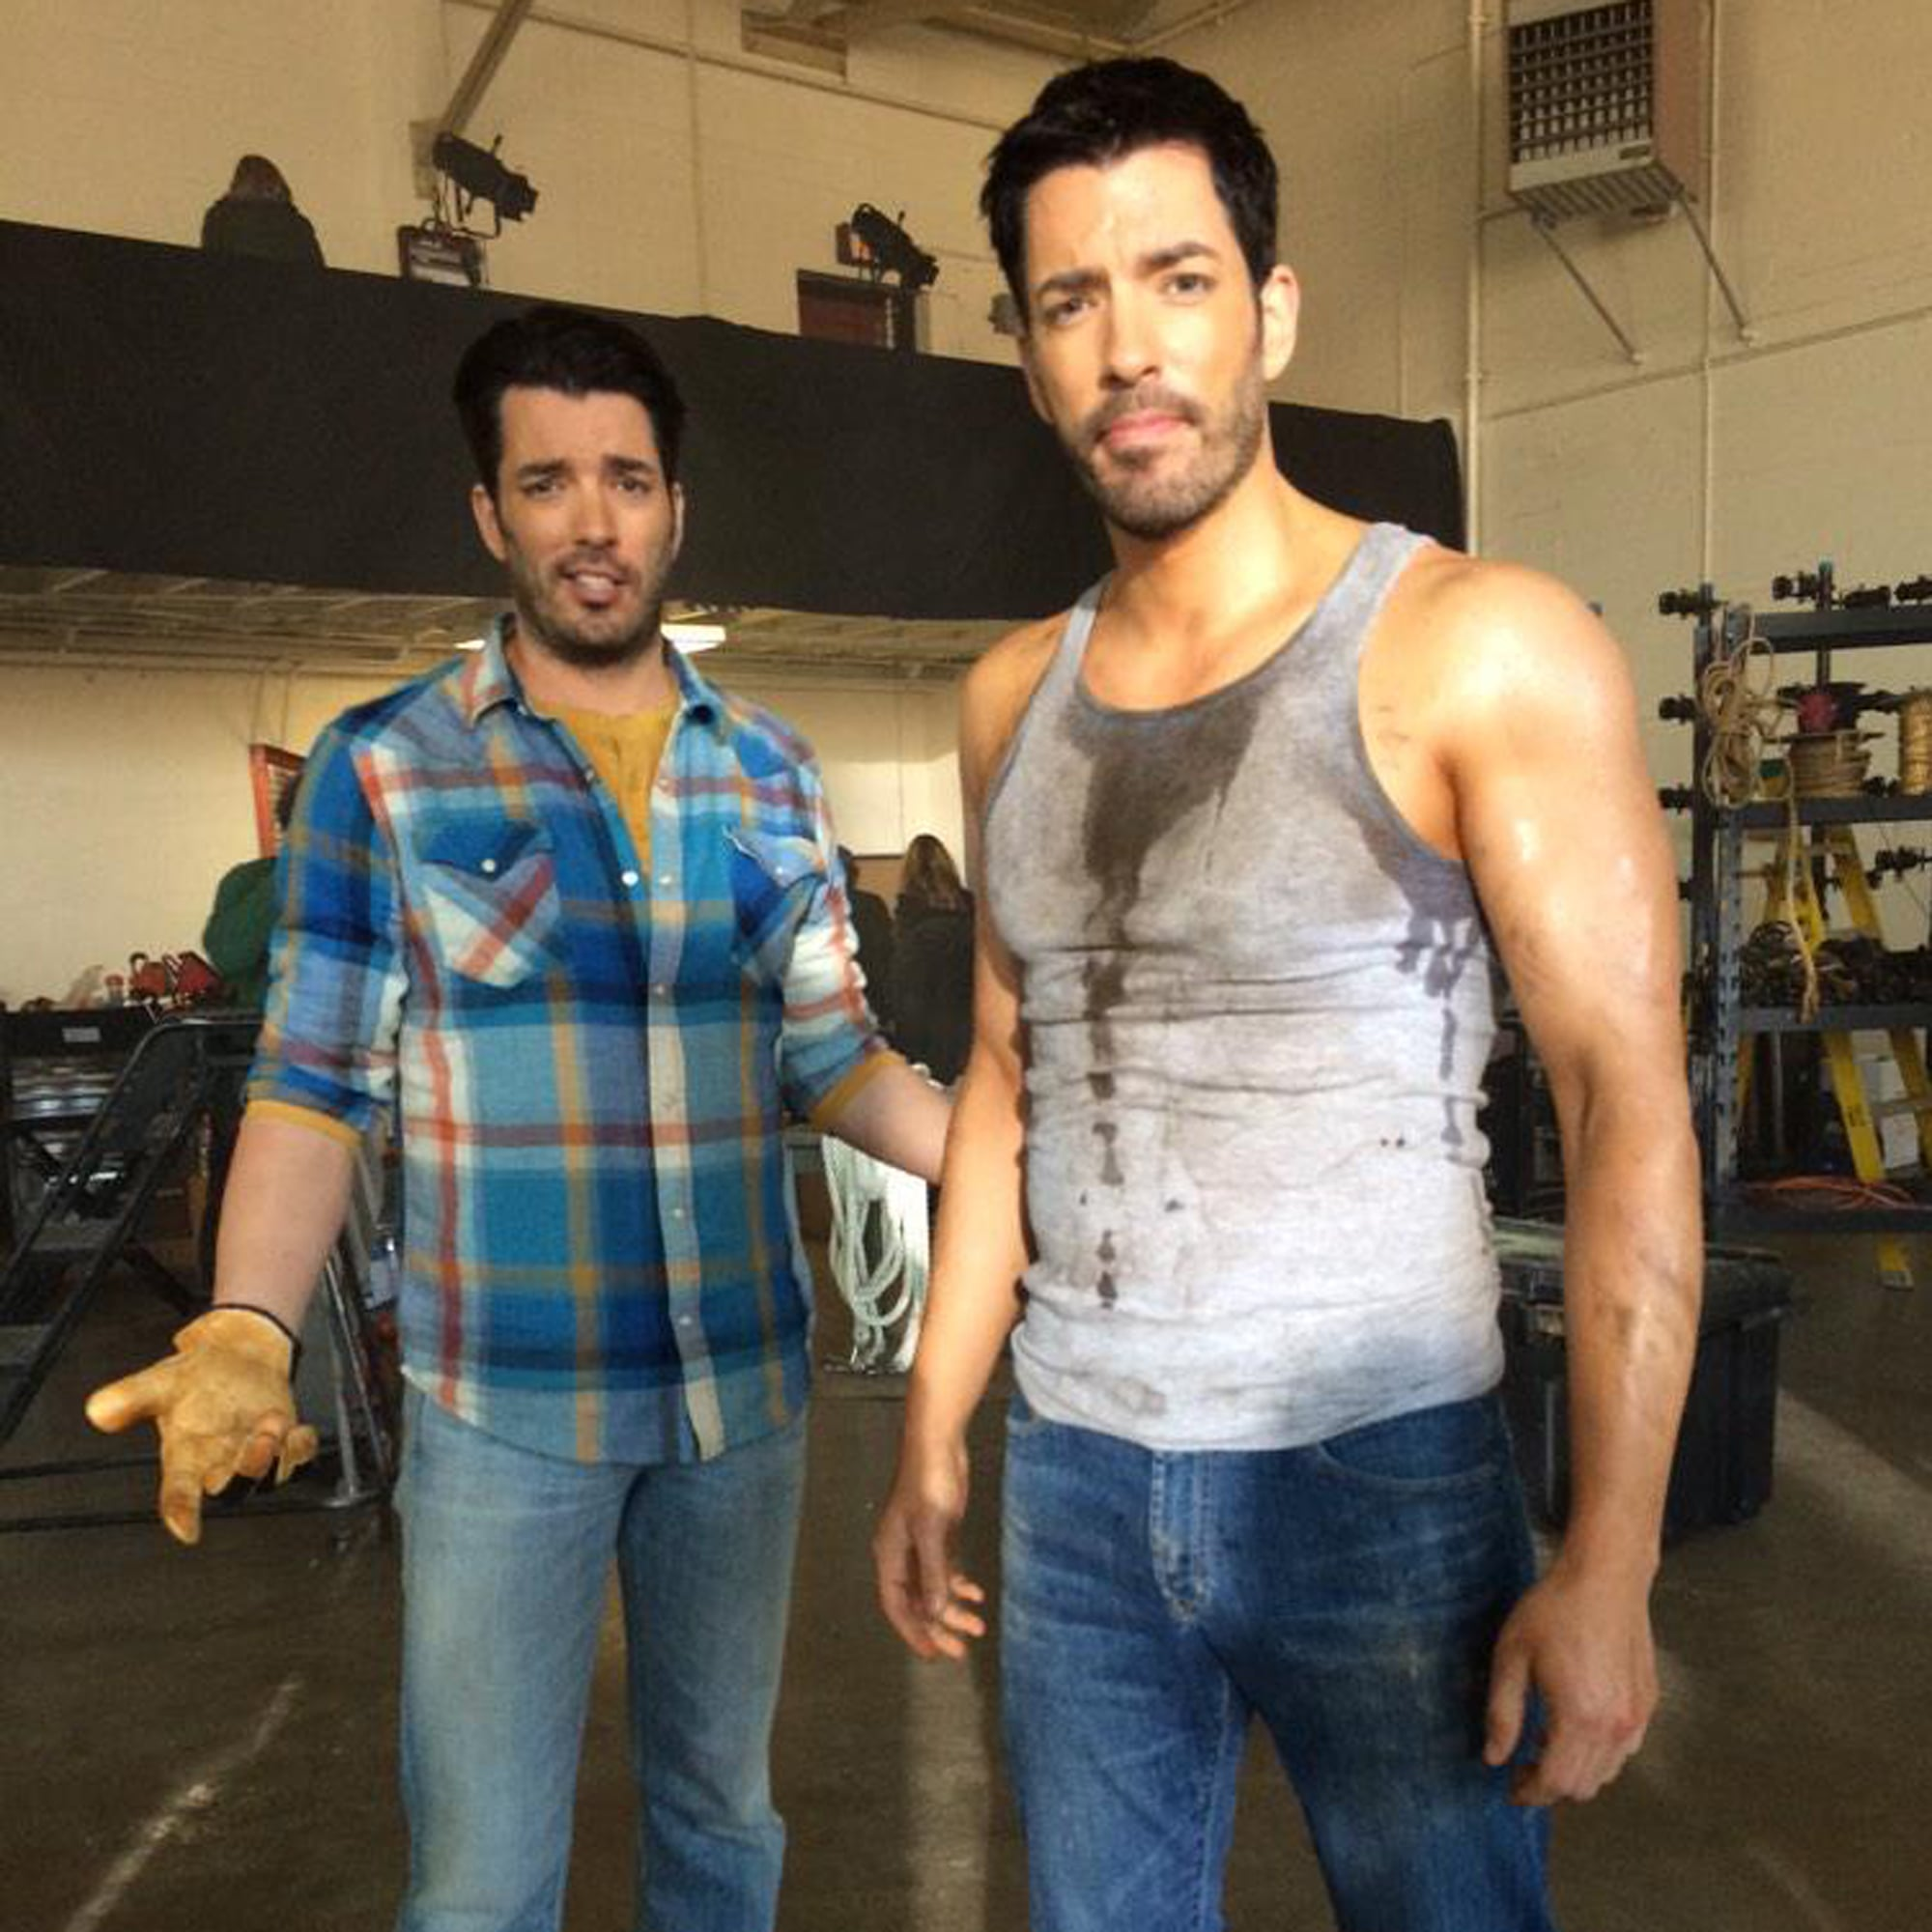 Property brothers twins dating other twins